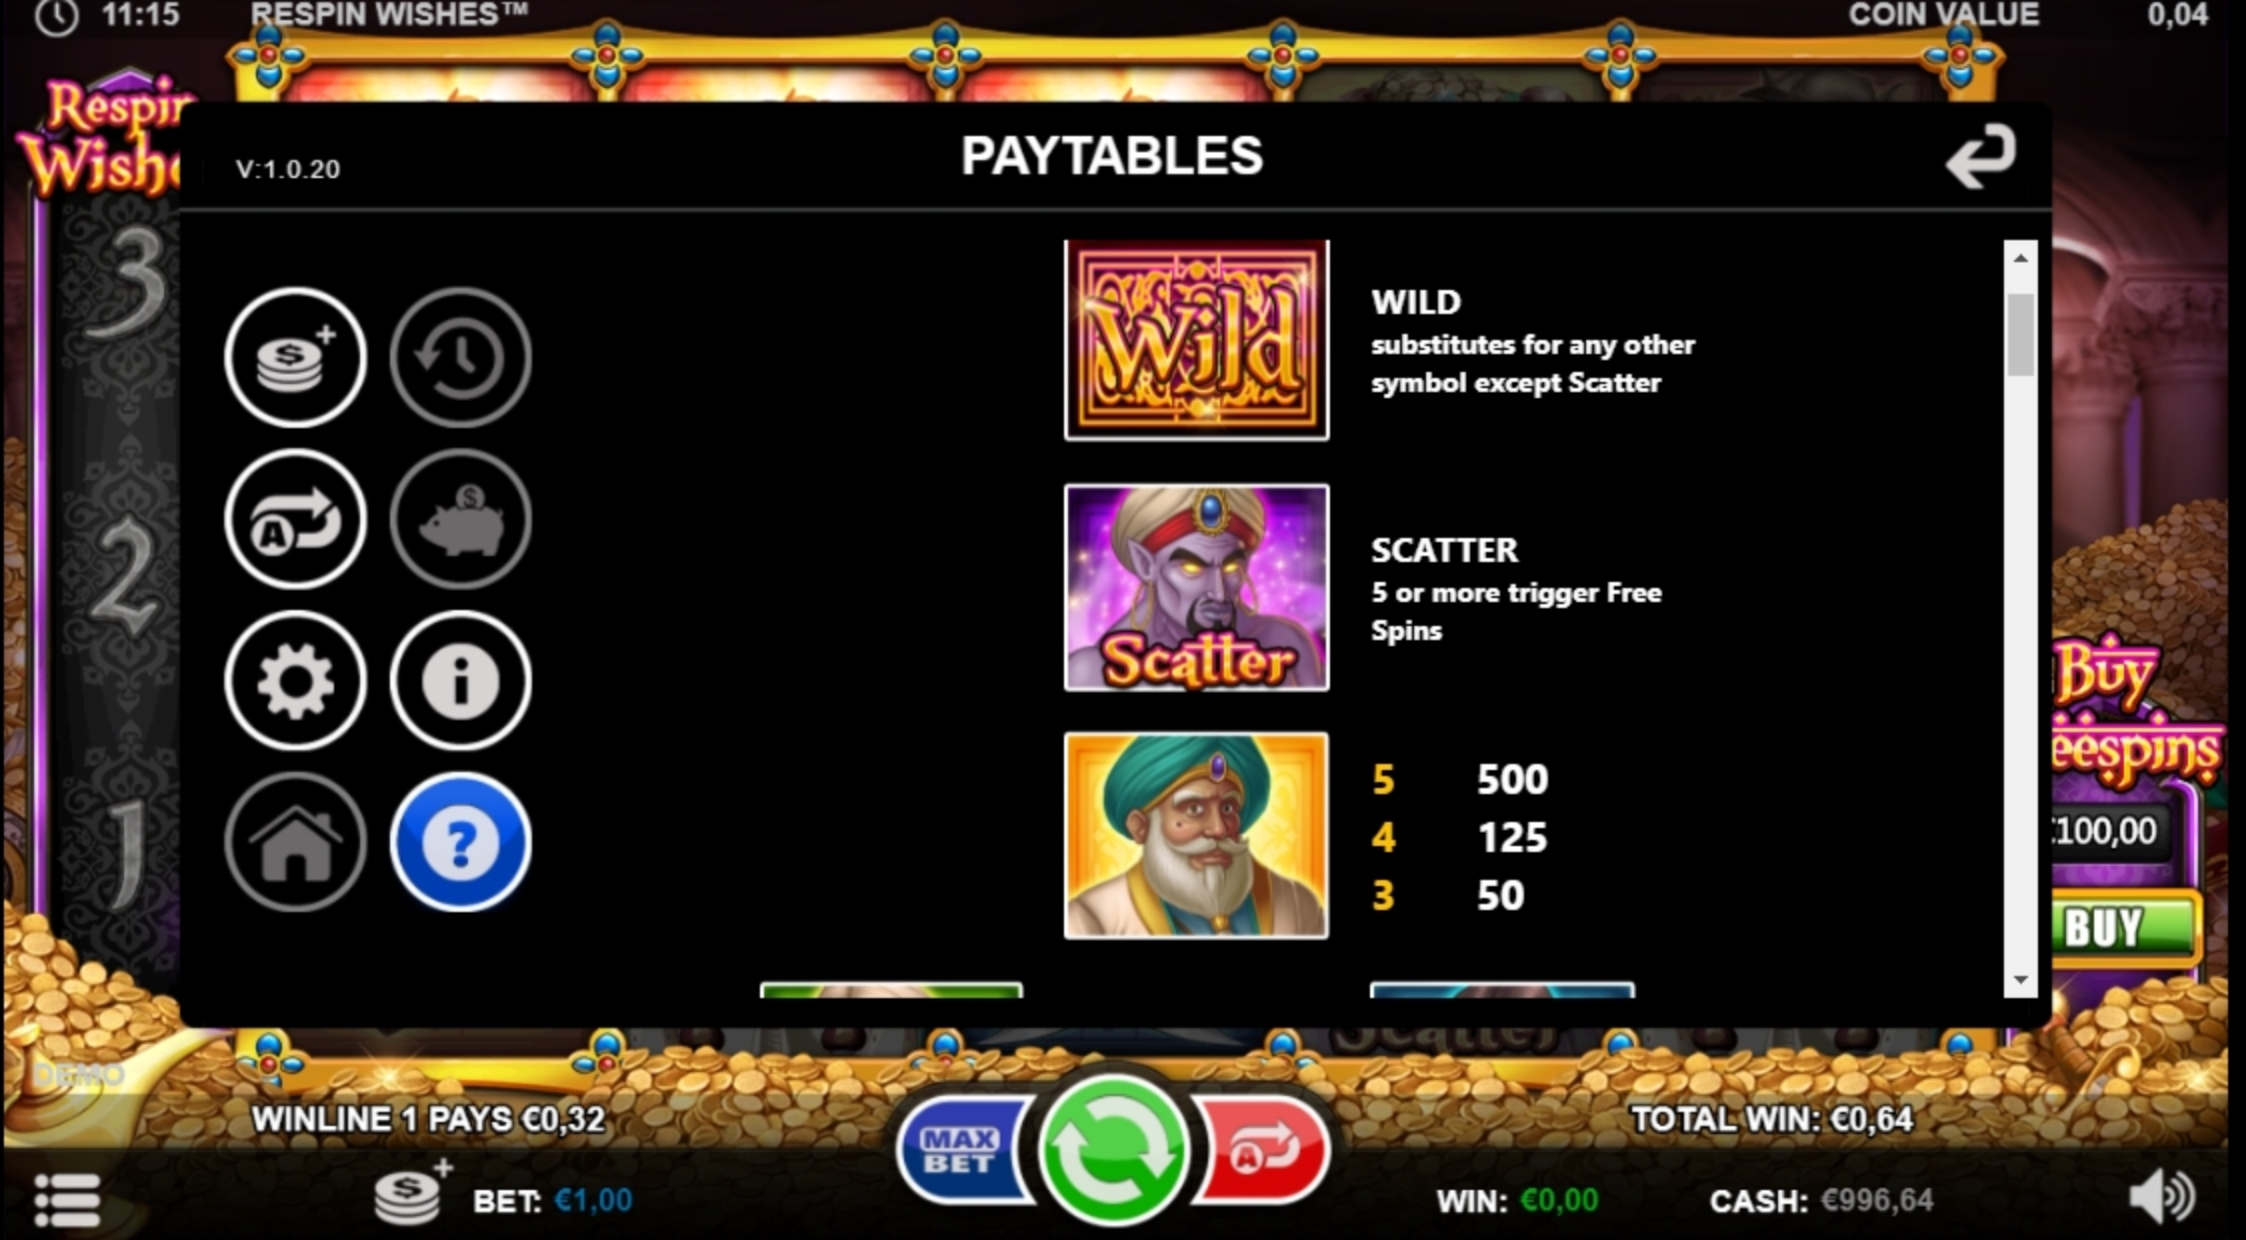 Info of Respin Wishes Slot Game by Games Inc